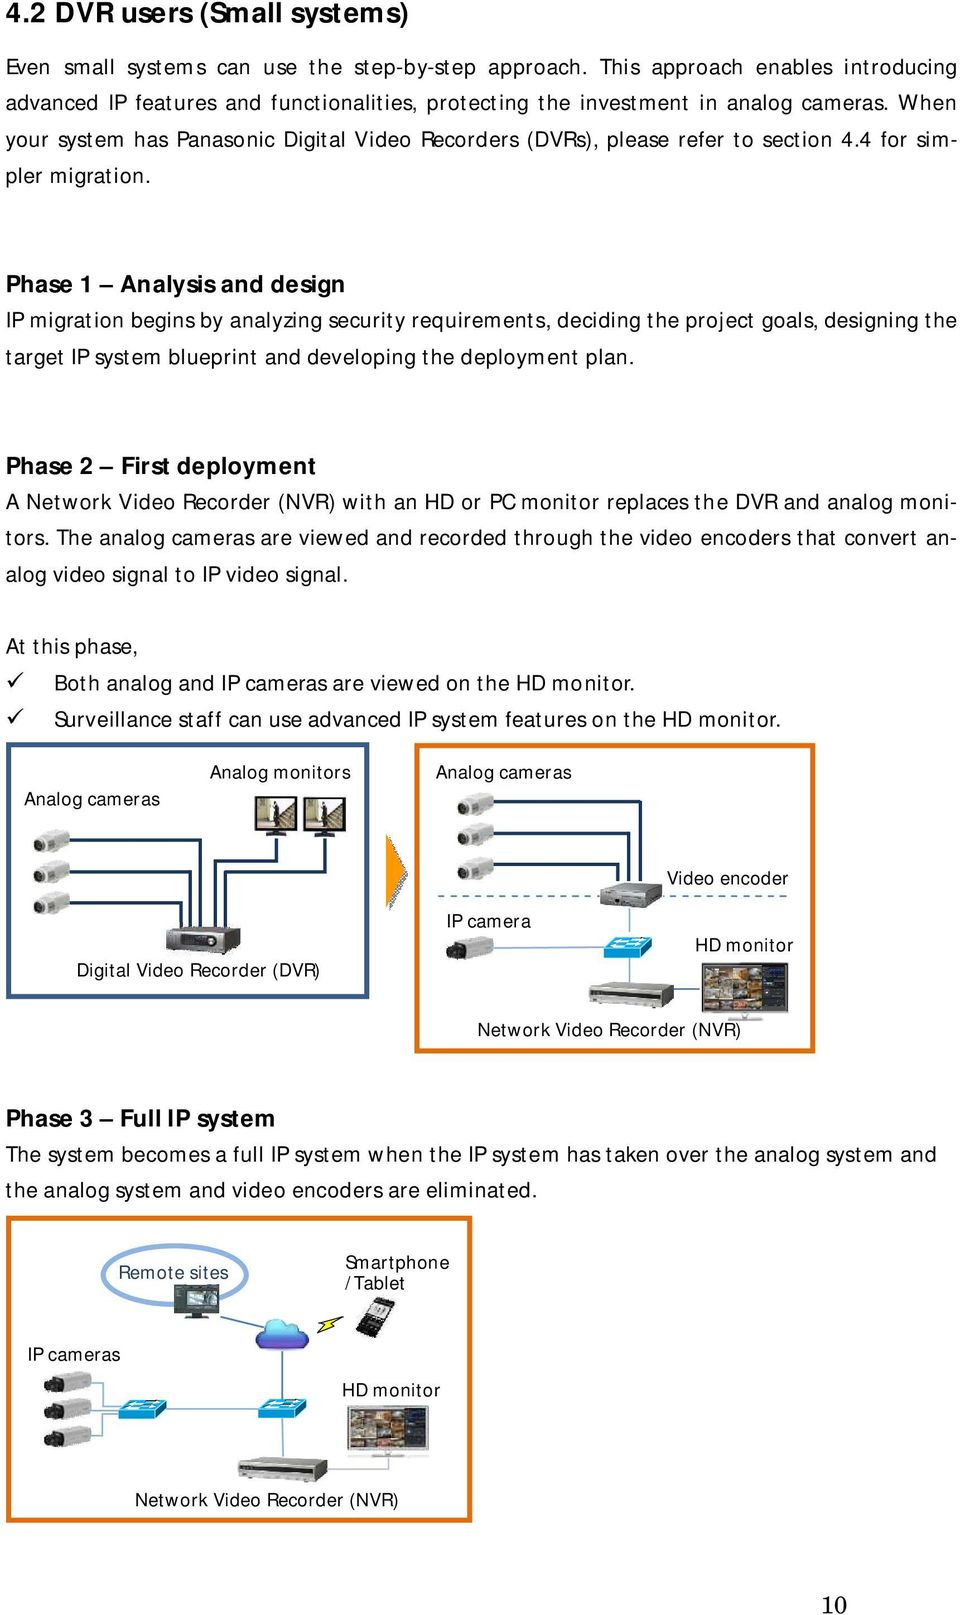 When your system has Panasonic Digital Video Recorders (DVRs), please refer to section 4.4 for simpler migration.